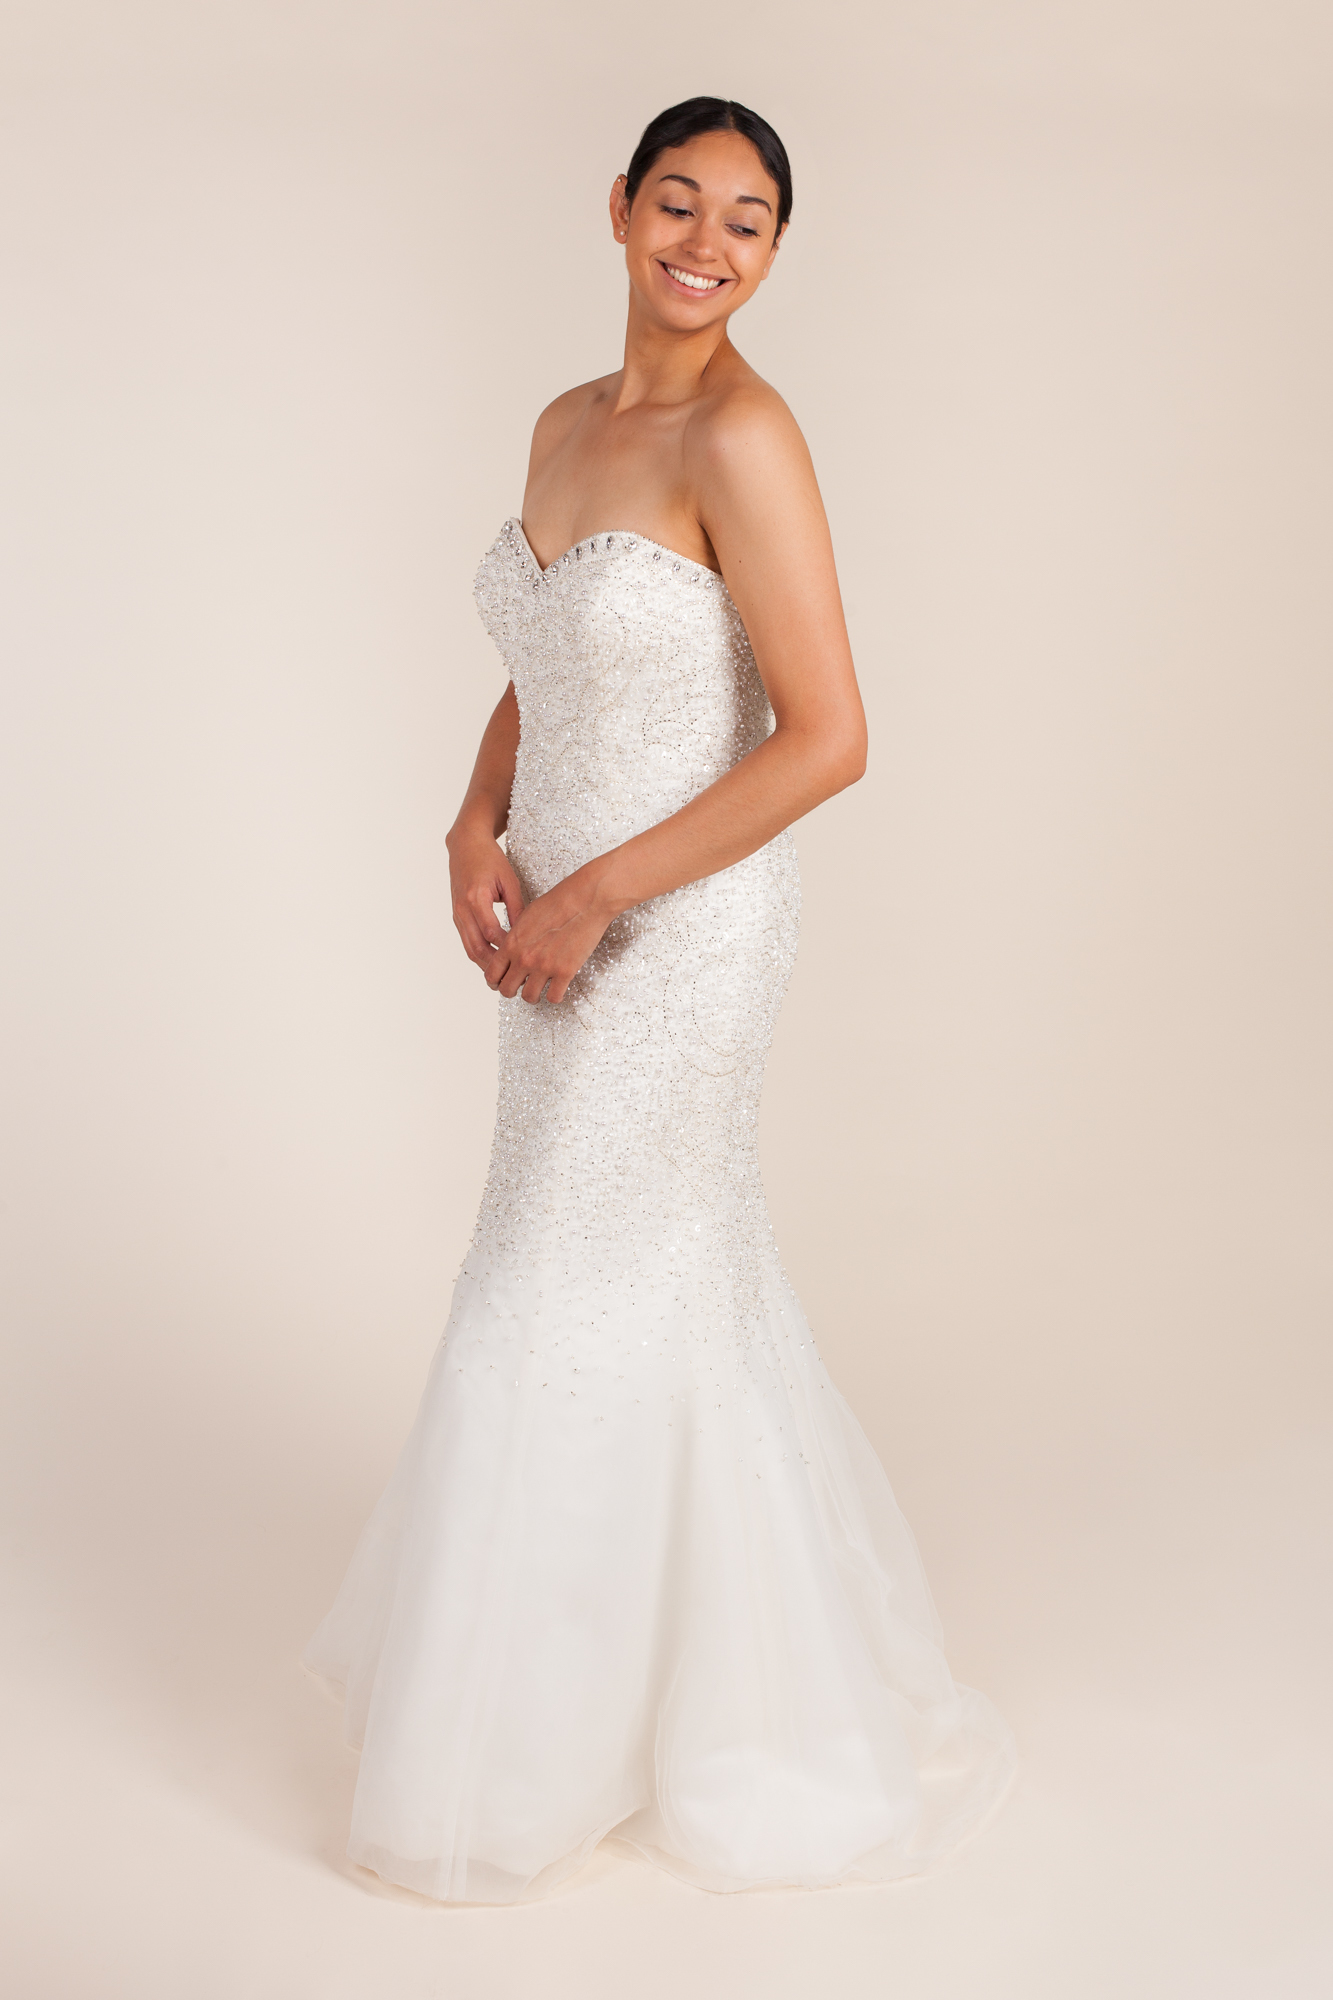 David's bridal - SWG688 size 10 - $1000 - (31% OFF)